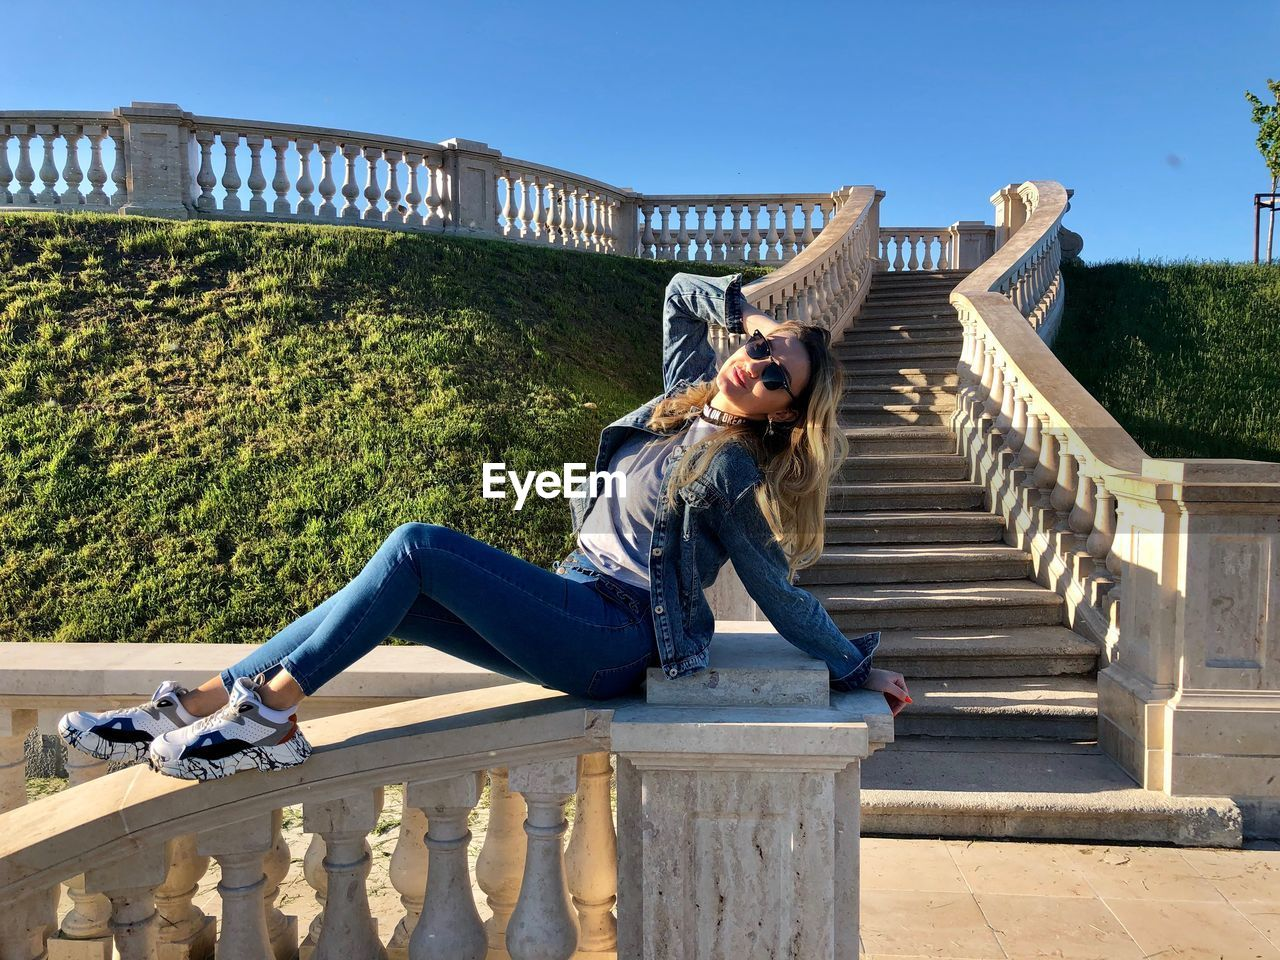 one person, full length, architecture, real people, leisure activity, lifestyles, young adult, casual clothing, built structure, railing, sunglasses, day, fashion, sunlight, nature, glasses, staircase, young women, bridge, outdoors, footbridge, hairstyle